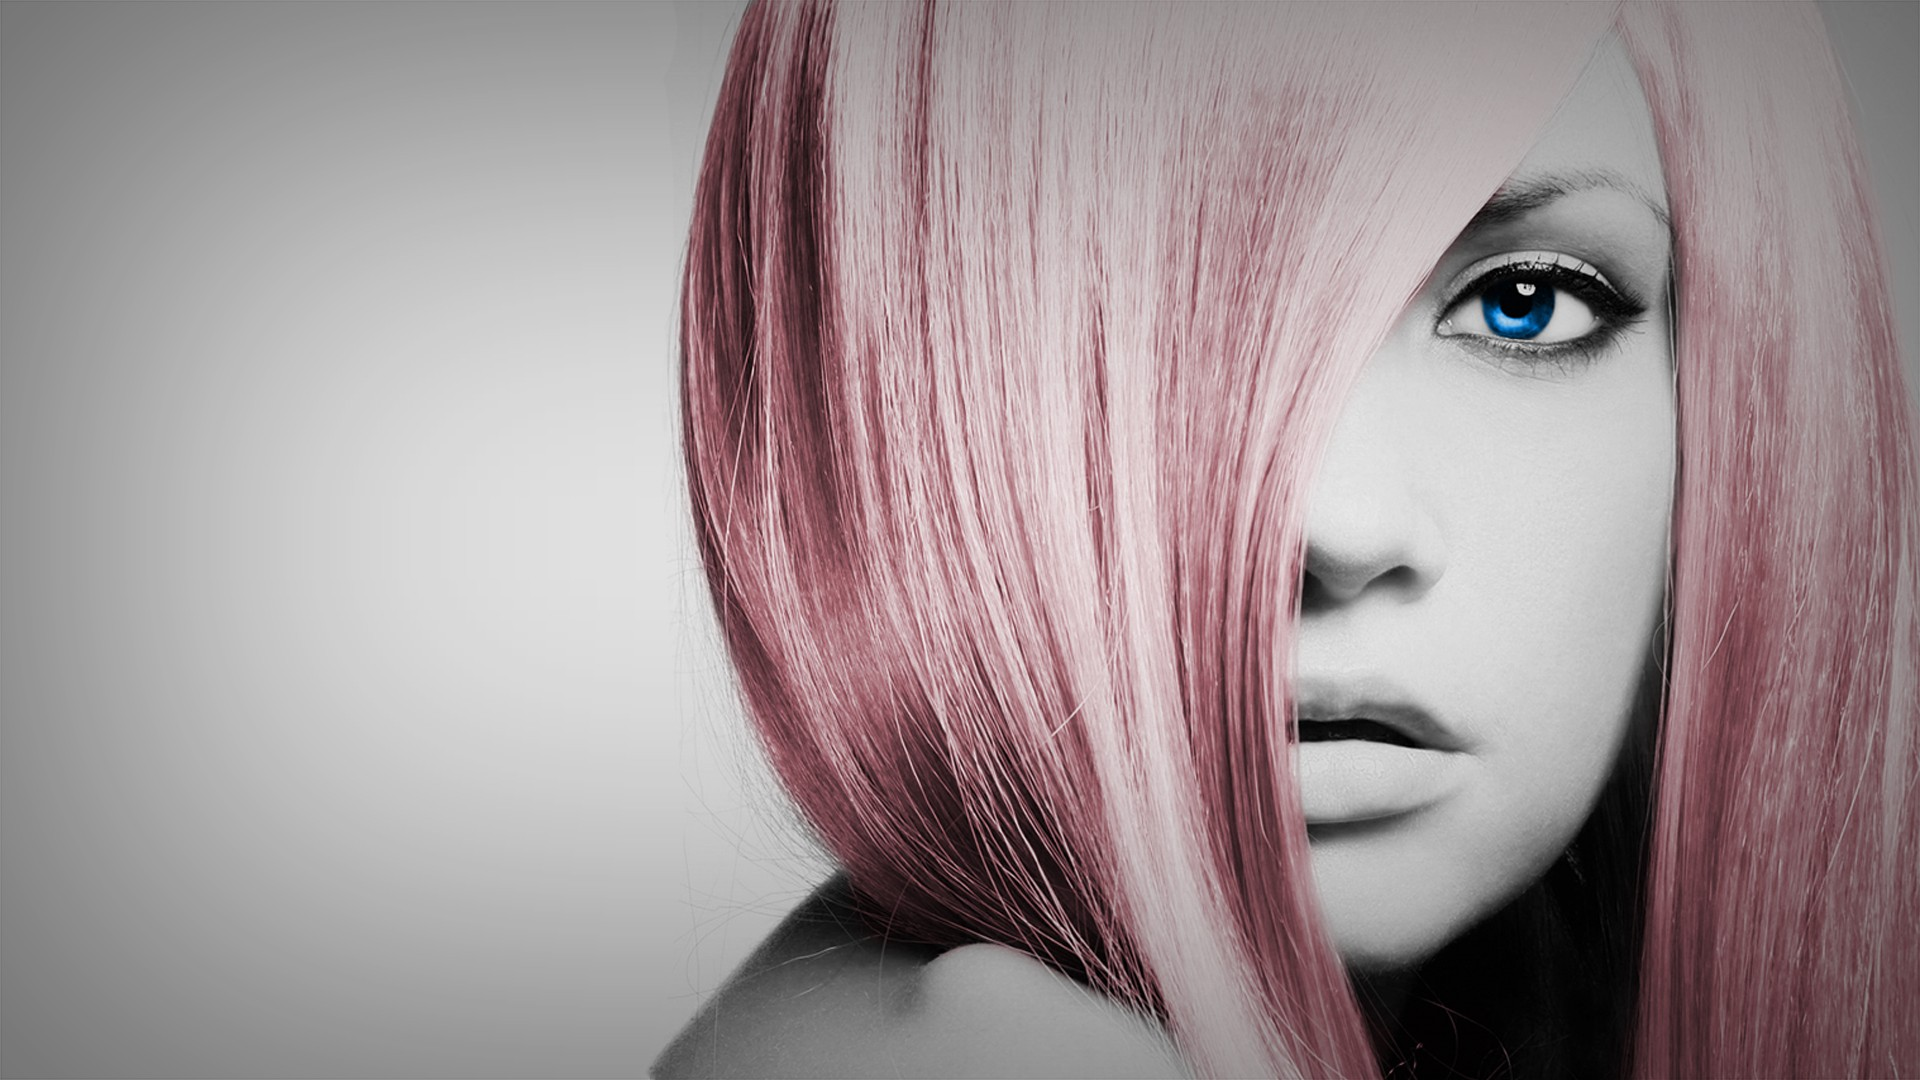 People 1920x1080 women eyes dyed hair selective coloring simple background